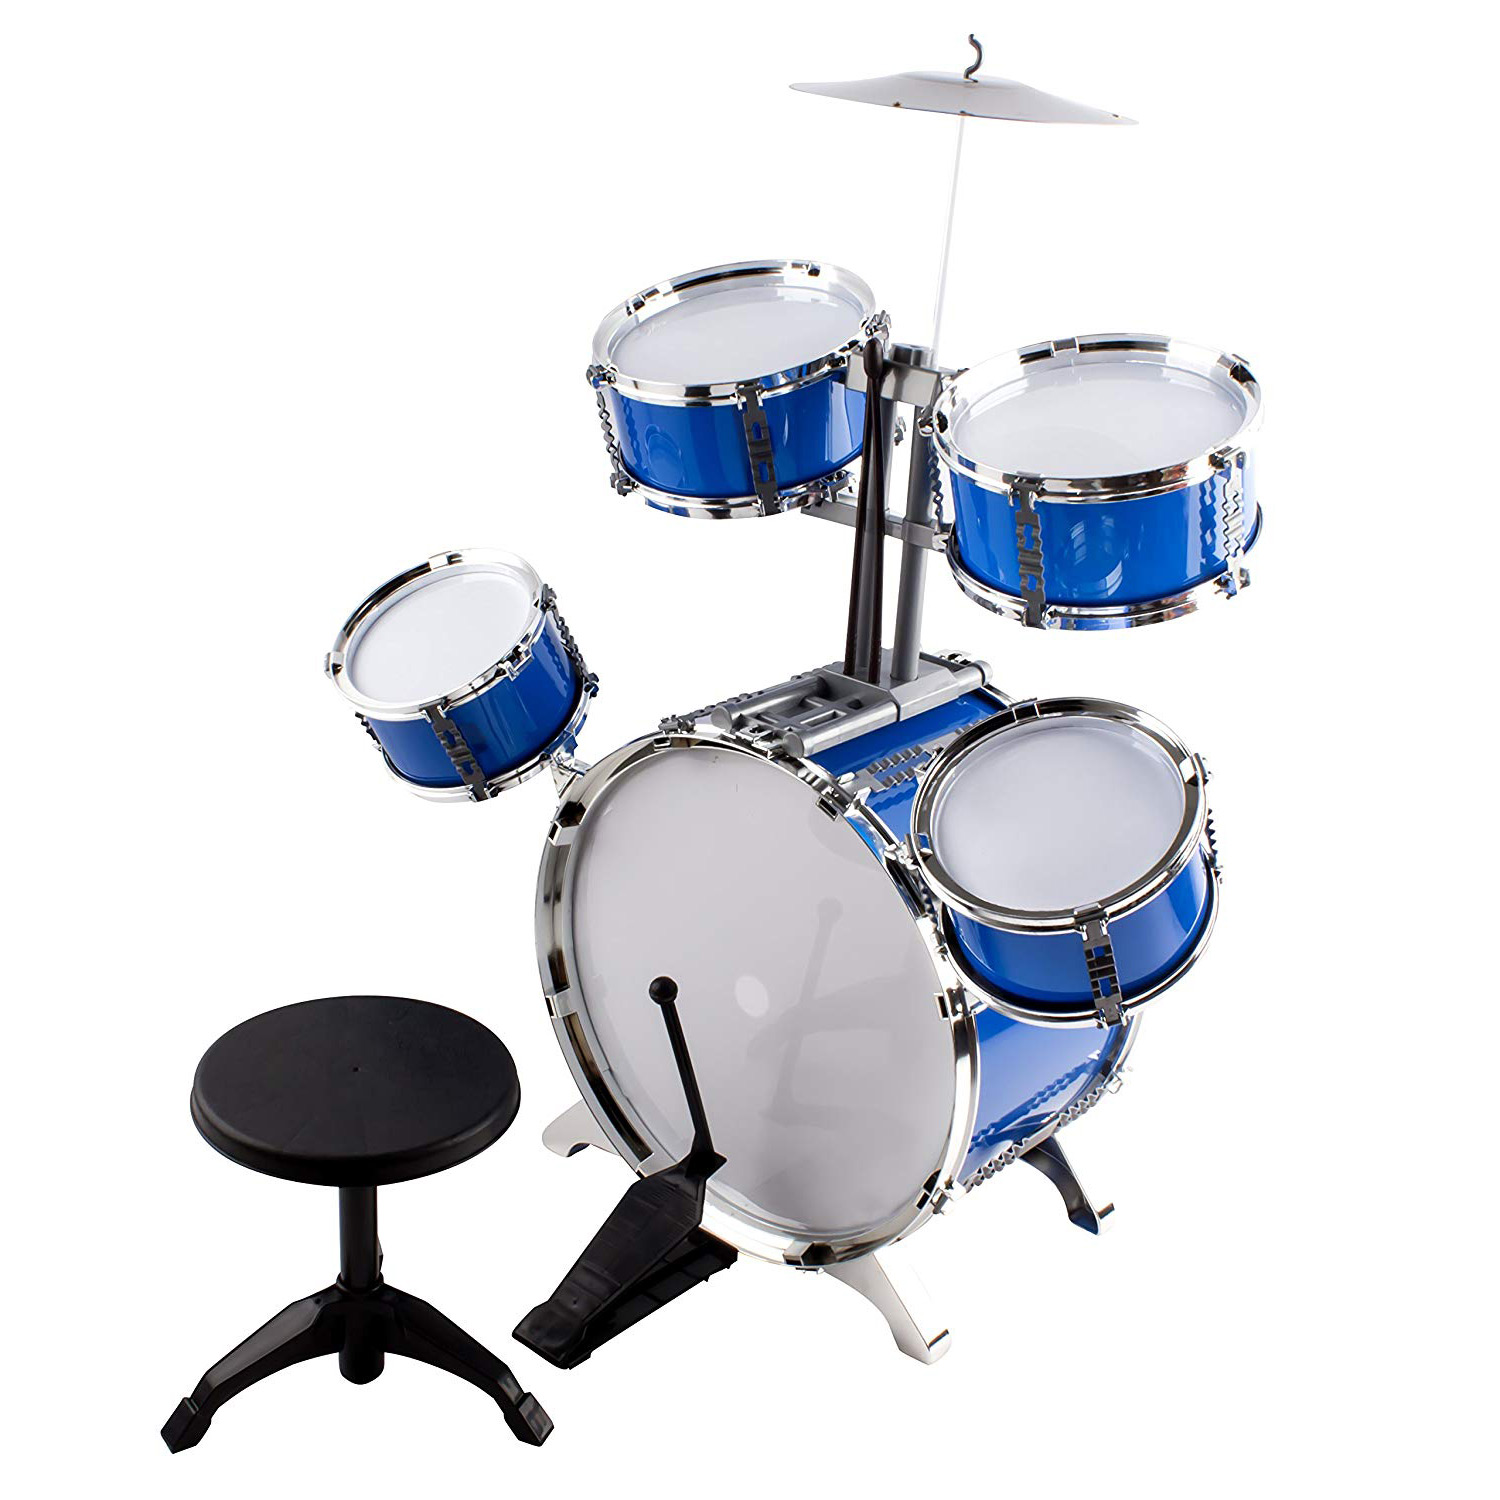 Classic Rhythm Toy Jazz Drum Big XXXL Size Children Kid's Musical Instrument Playset With 5 Drums, Cymbal, Chair, Kick Pedal, And Drumsticks A Perfect Beginner Set For Kids (Blue)